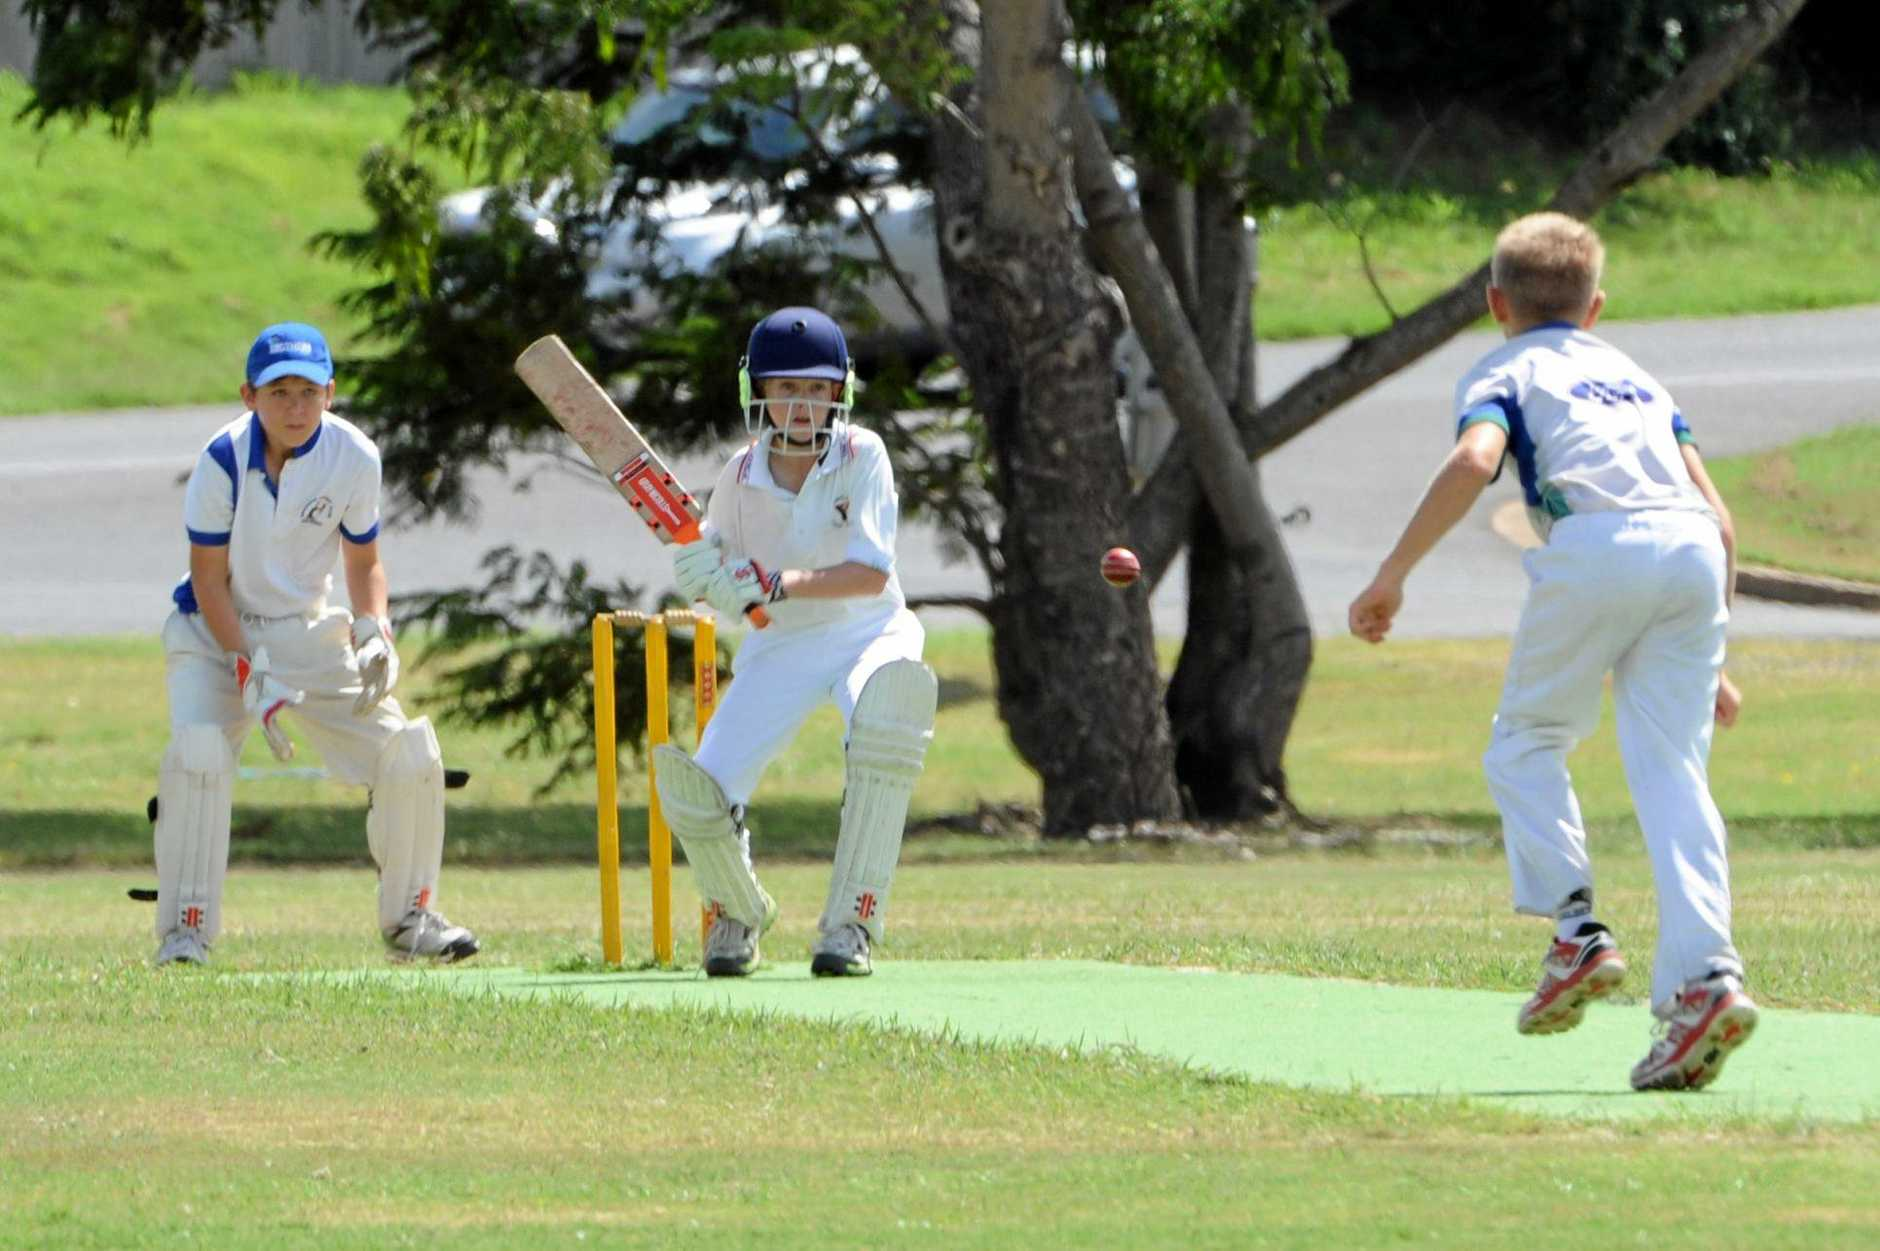 SKILL SET: Junior cricketers will benefit from proposed rule changes.